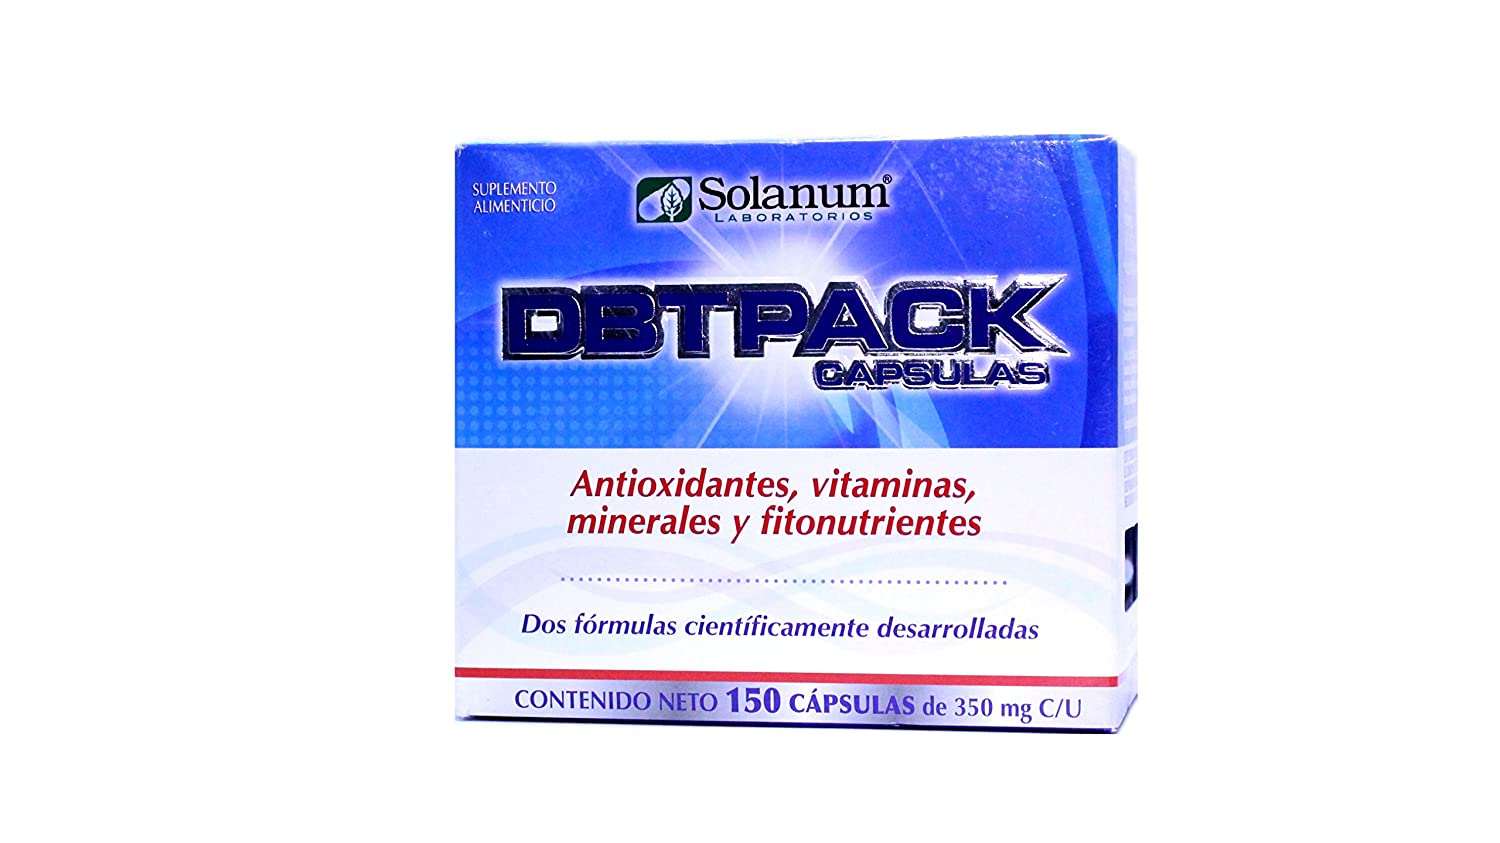 Amazon.com: Dbtpack Multivitamin Multimineral Complete Vitamin 150 Tabs Unisex: Health & Personal Care